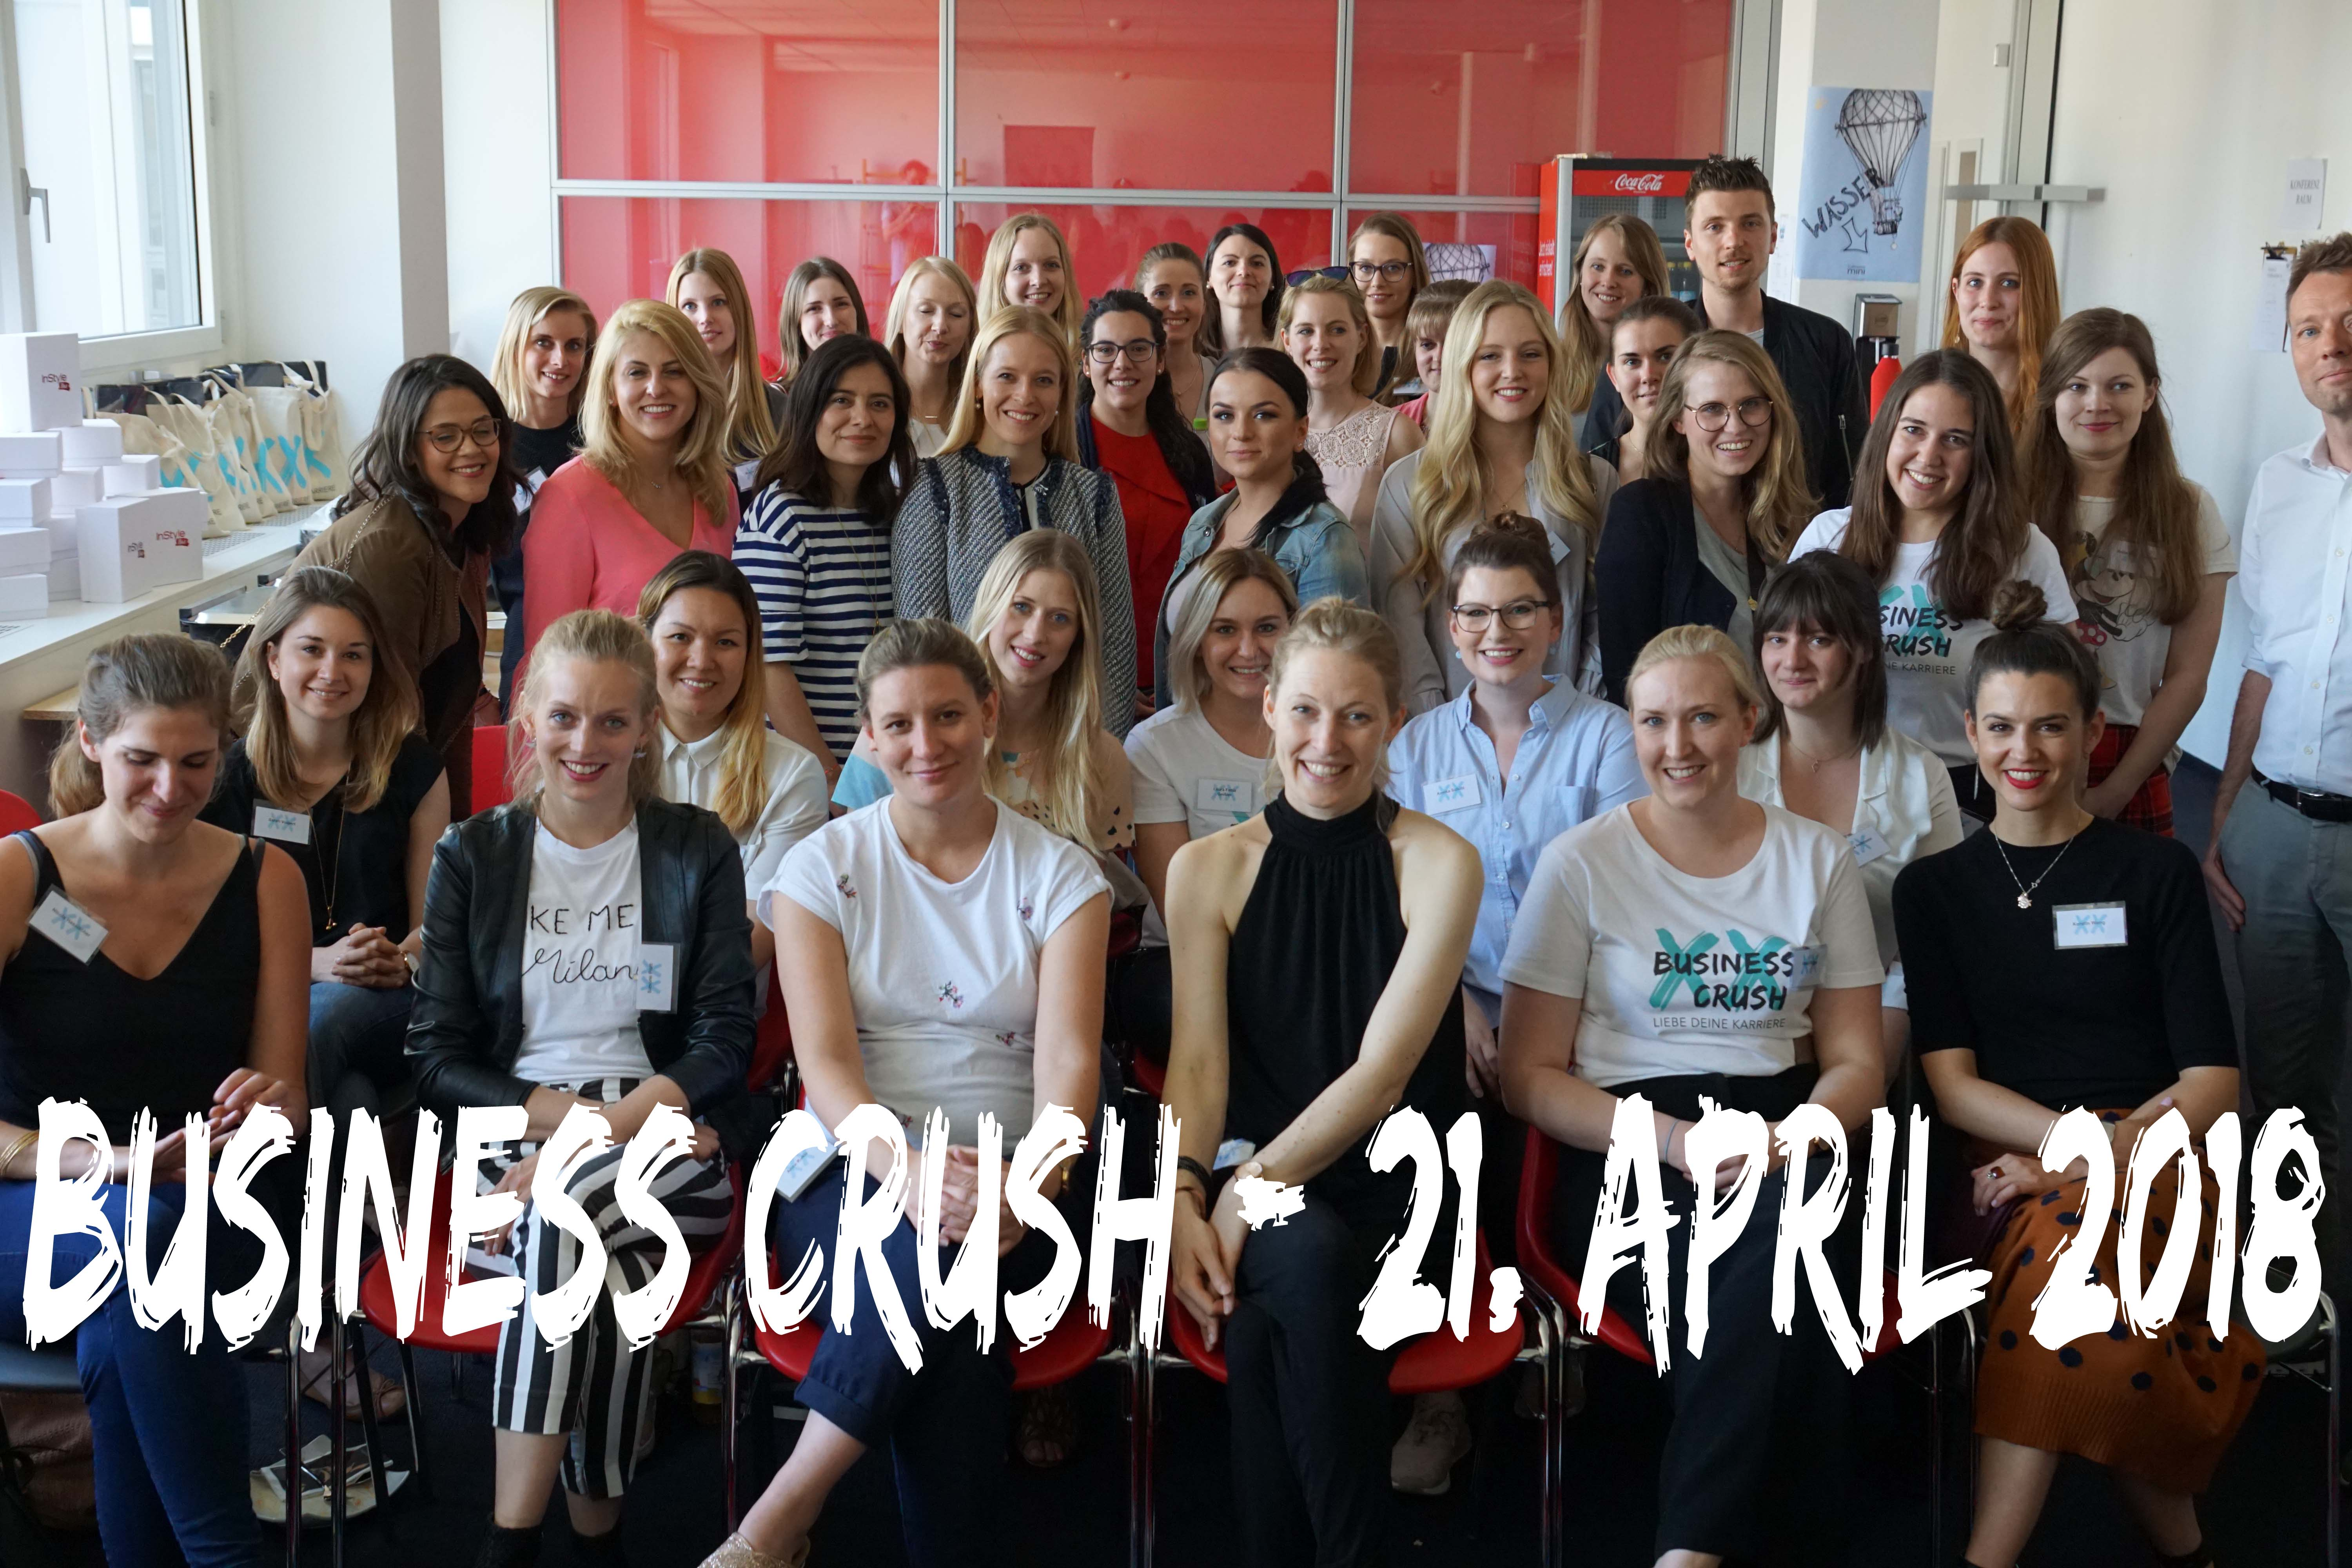 Business Crush-Event am 21. April 2018.